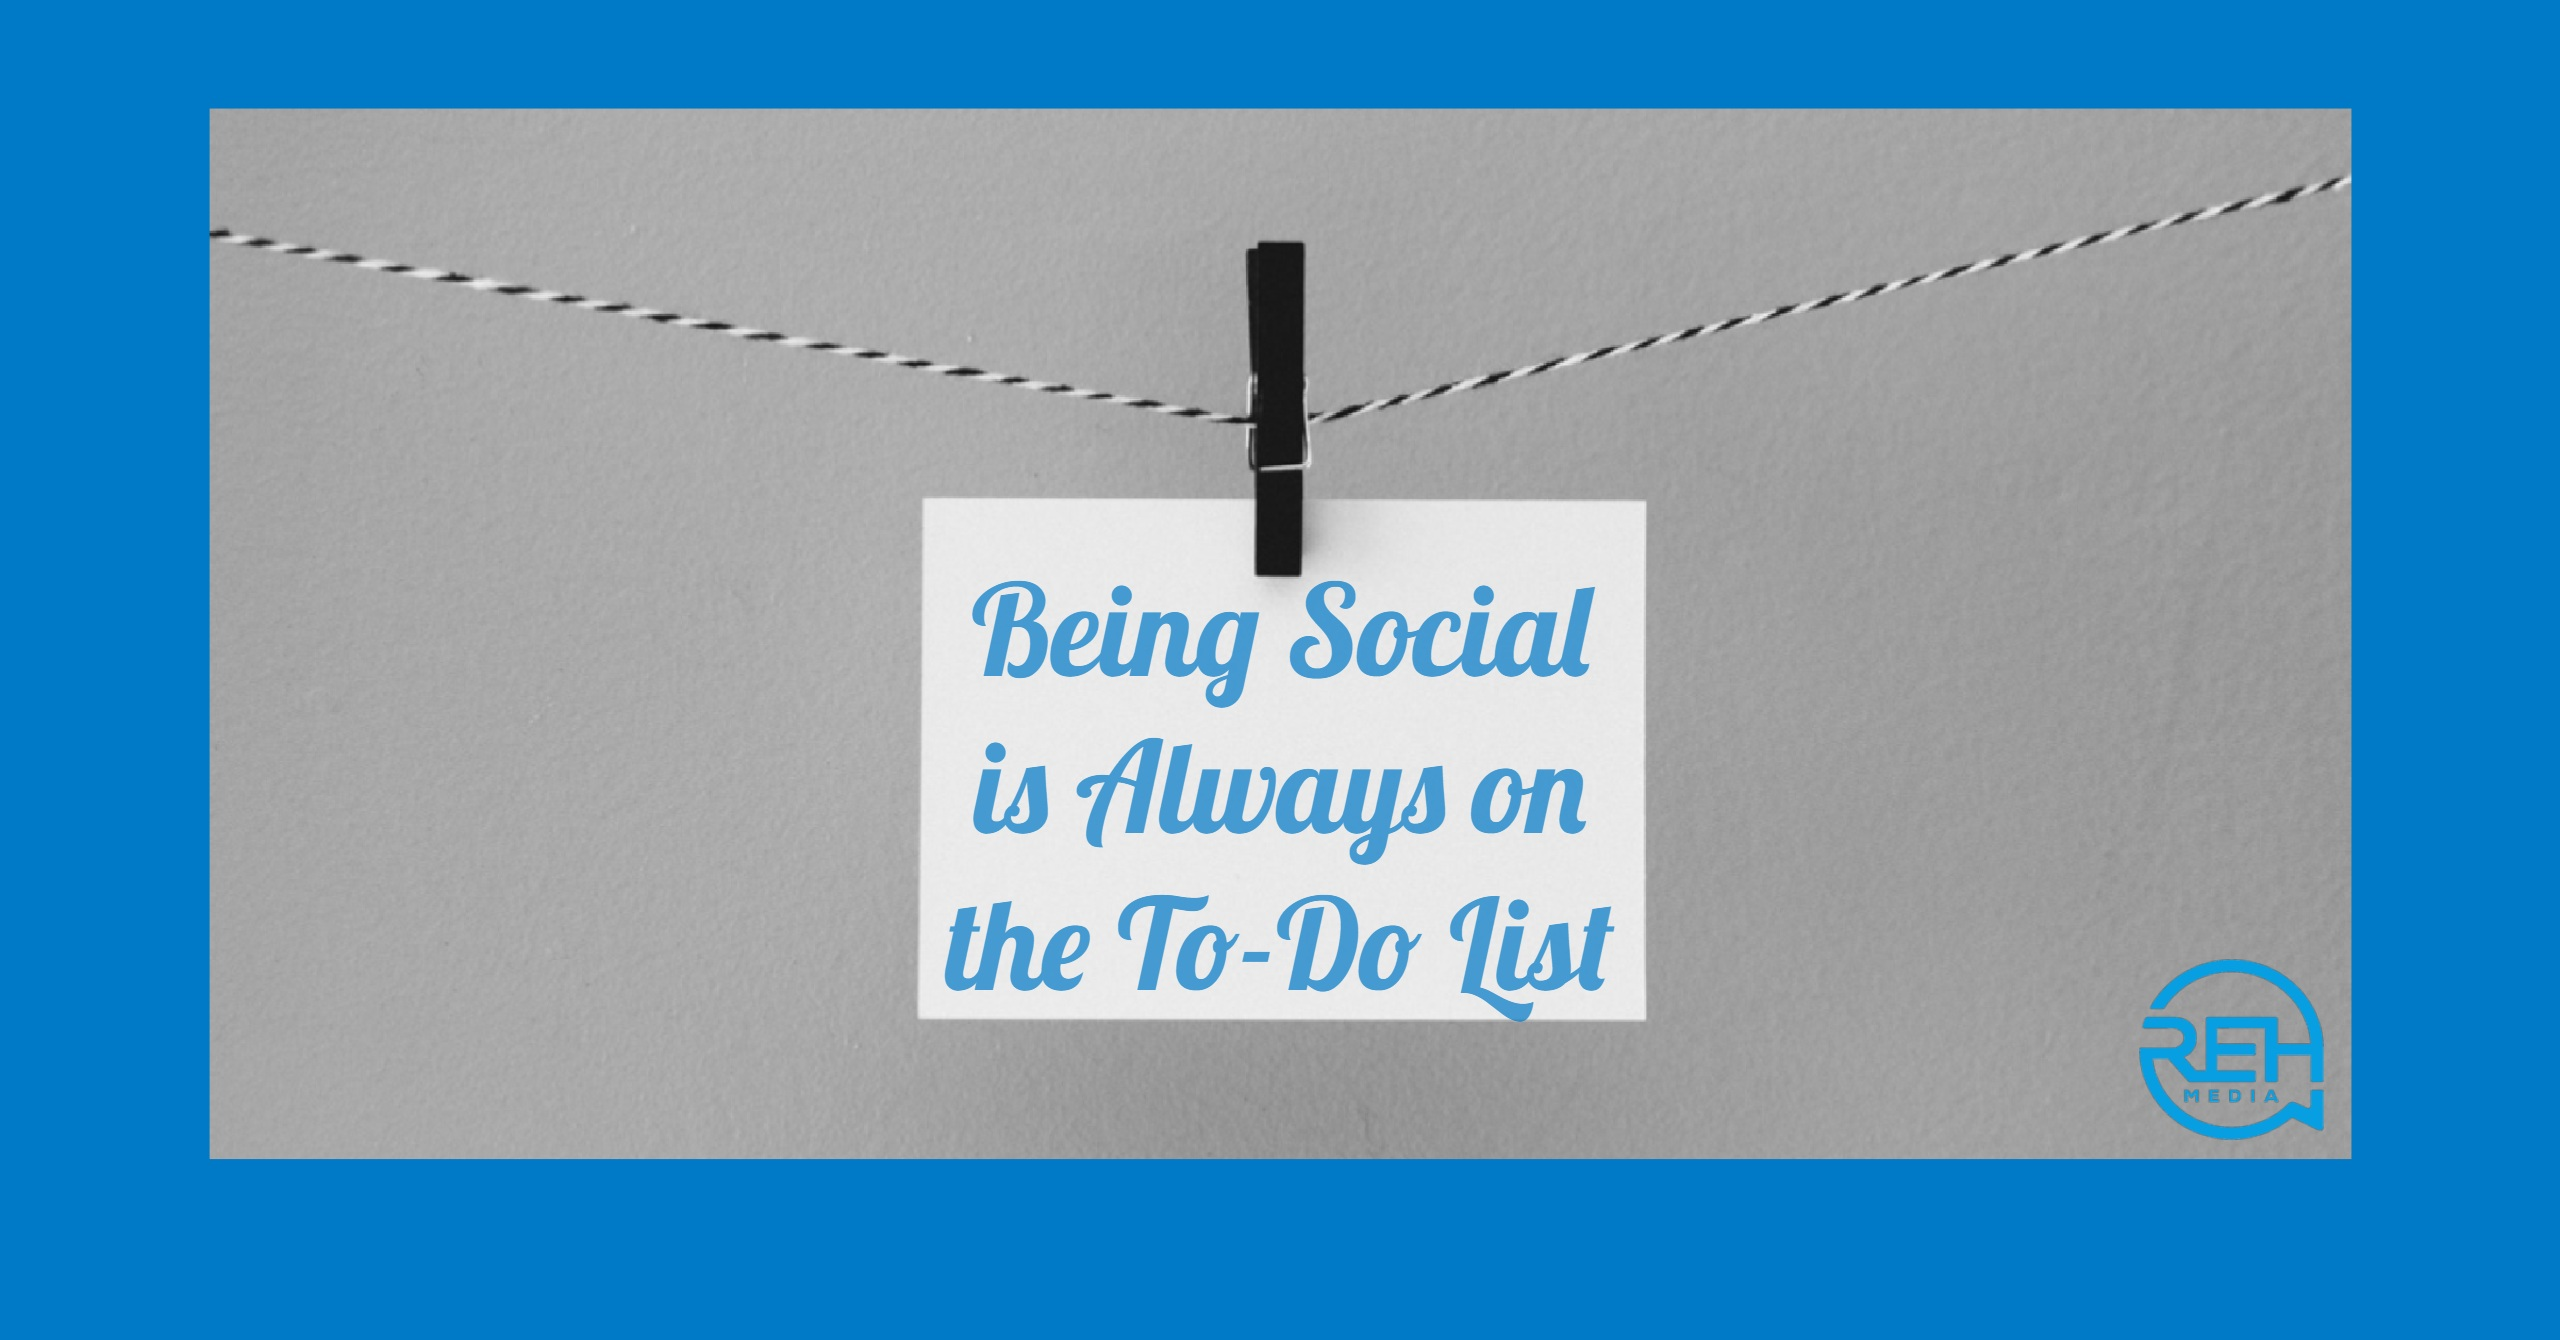 Being Social Is Always On The To-Do List